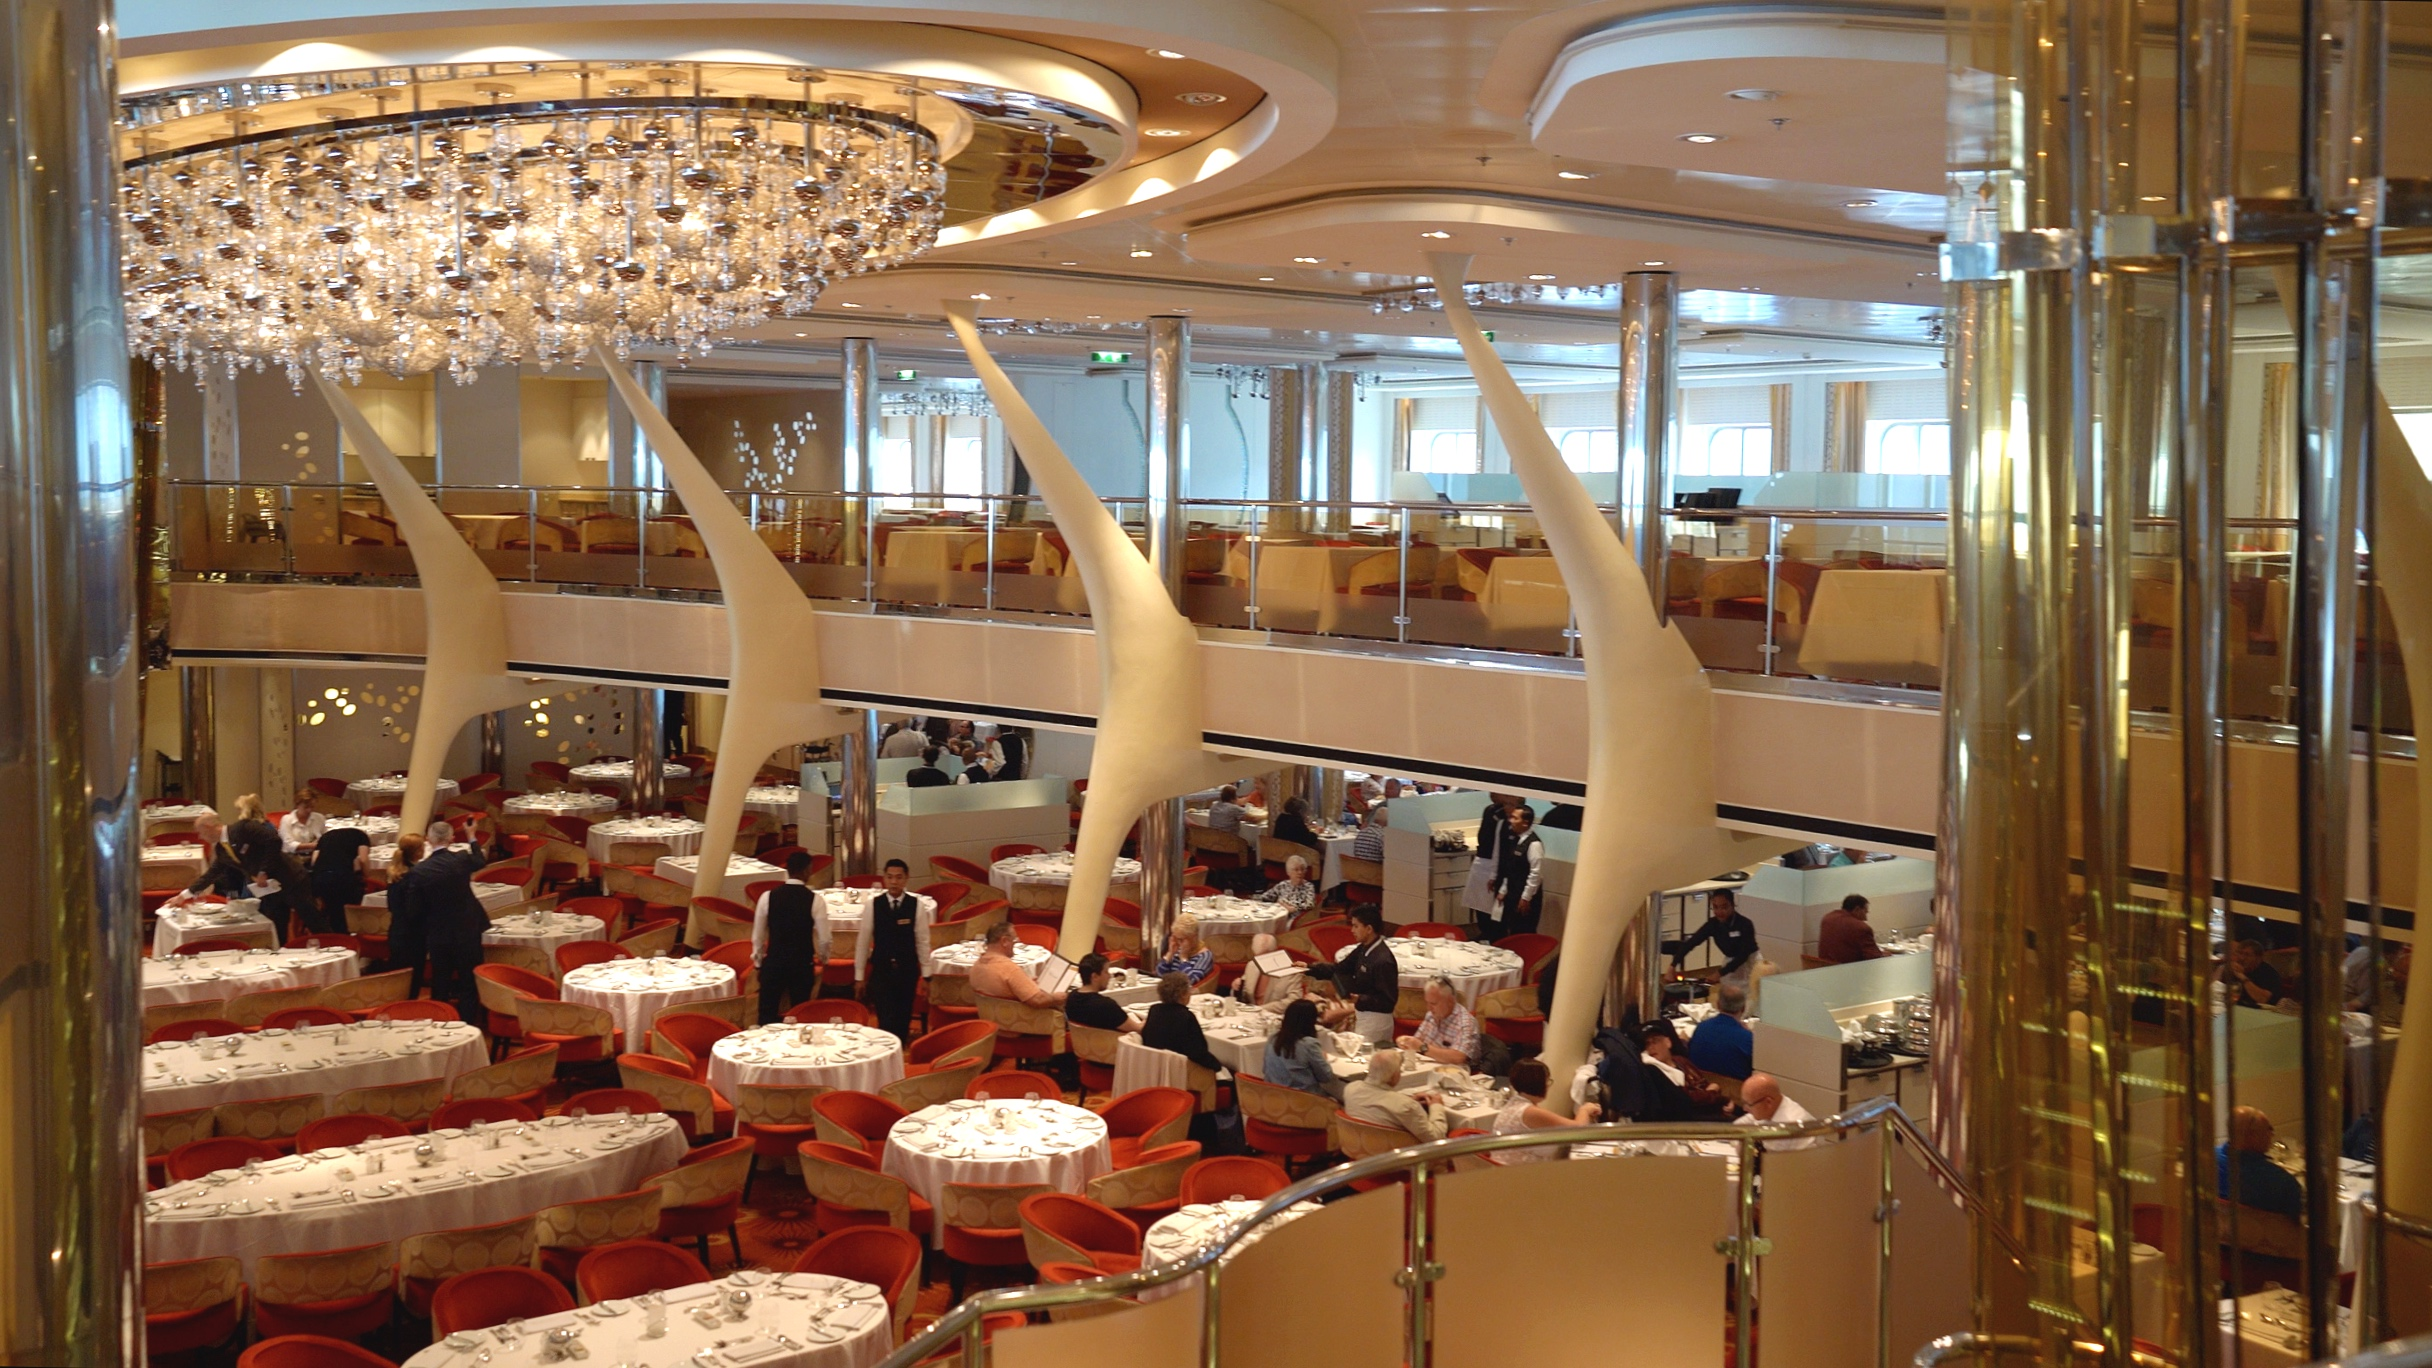 The two tiered dining room viewed from the mezzanine.